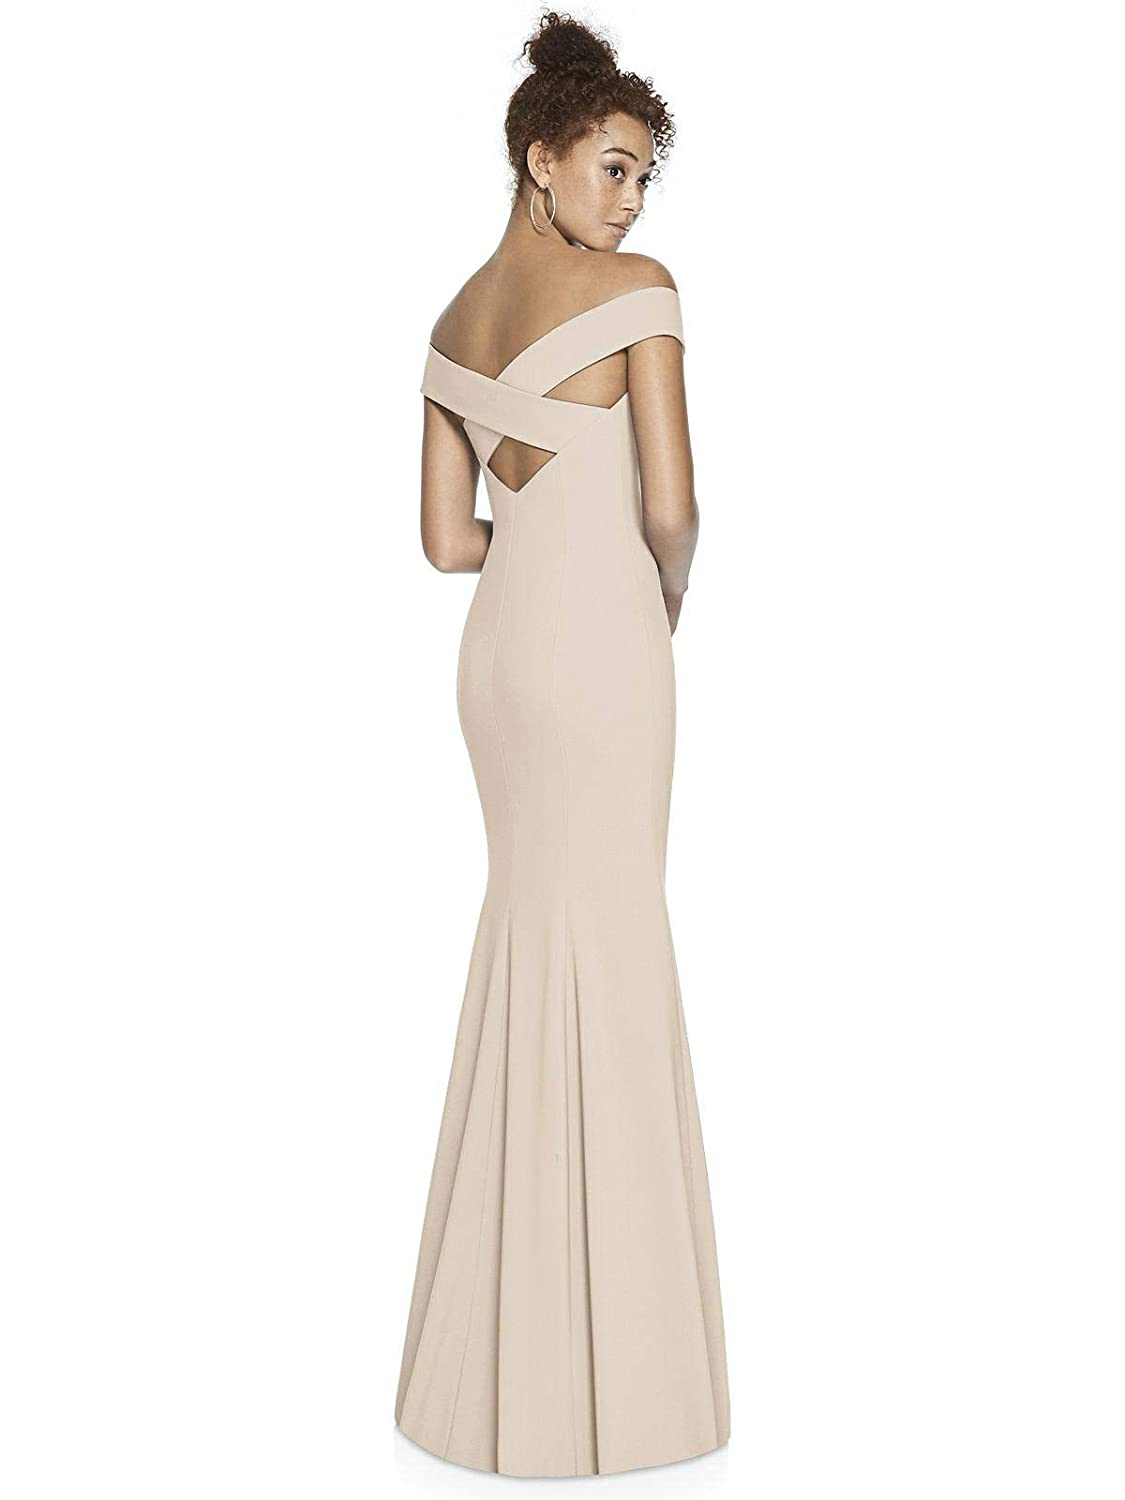 0f1a5932fed Dessy Collection Crepe Trumpet Full Length Off The Shoulder Special  Occasion Cocktail Dress 3012 at Amazon Women s Clothing store